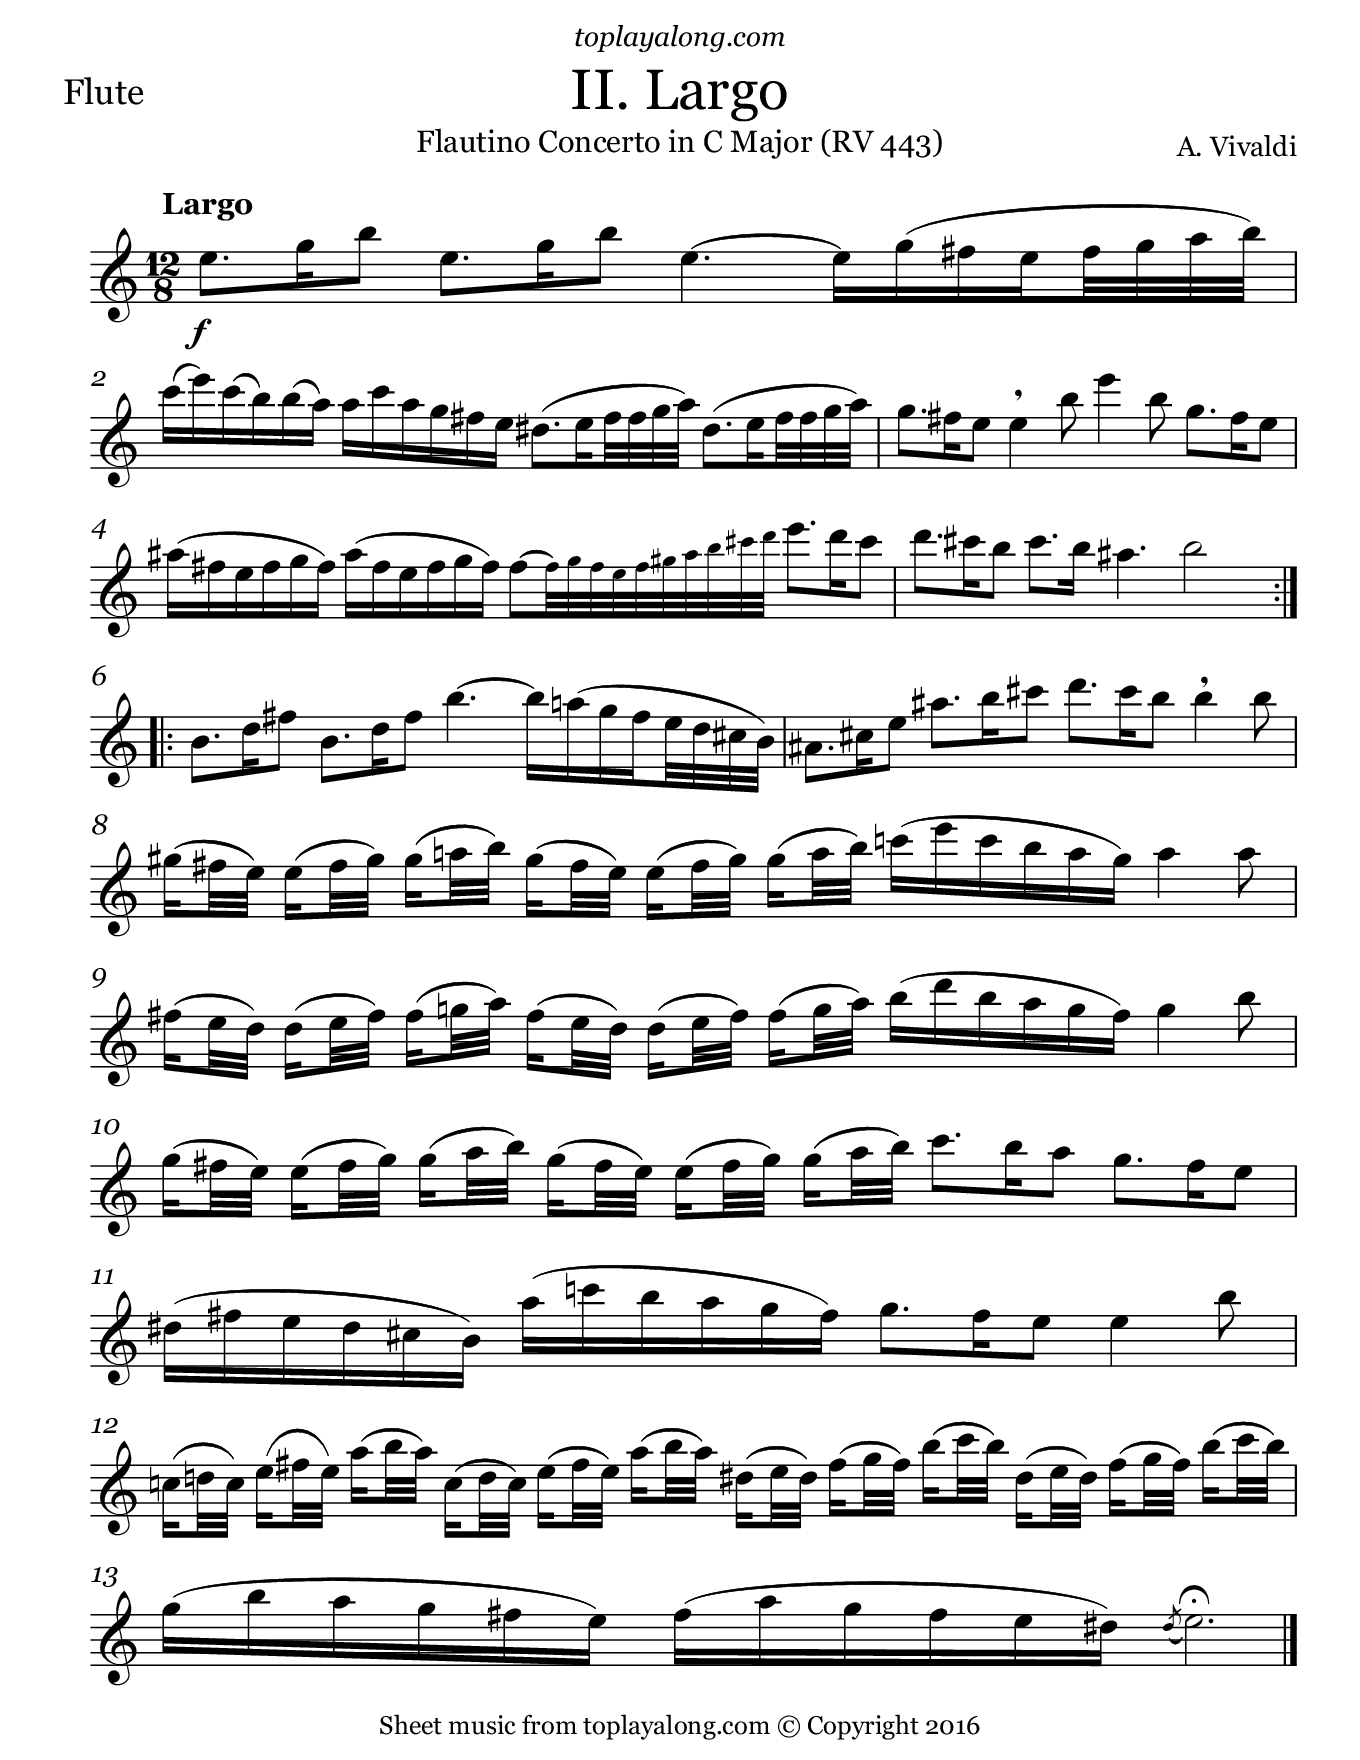 Flautino Concerto in C major RV 443 (II. Largo) by Vivaldi. Sheet music for Flute, page 1.